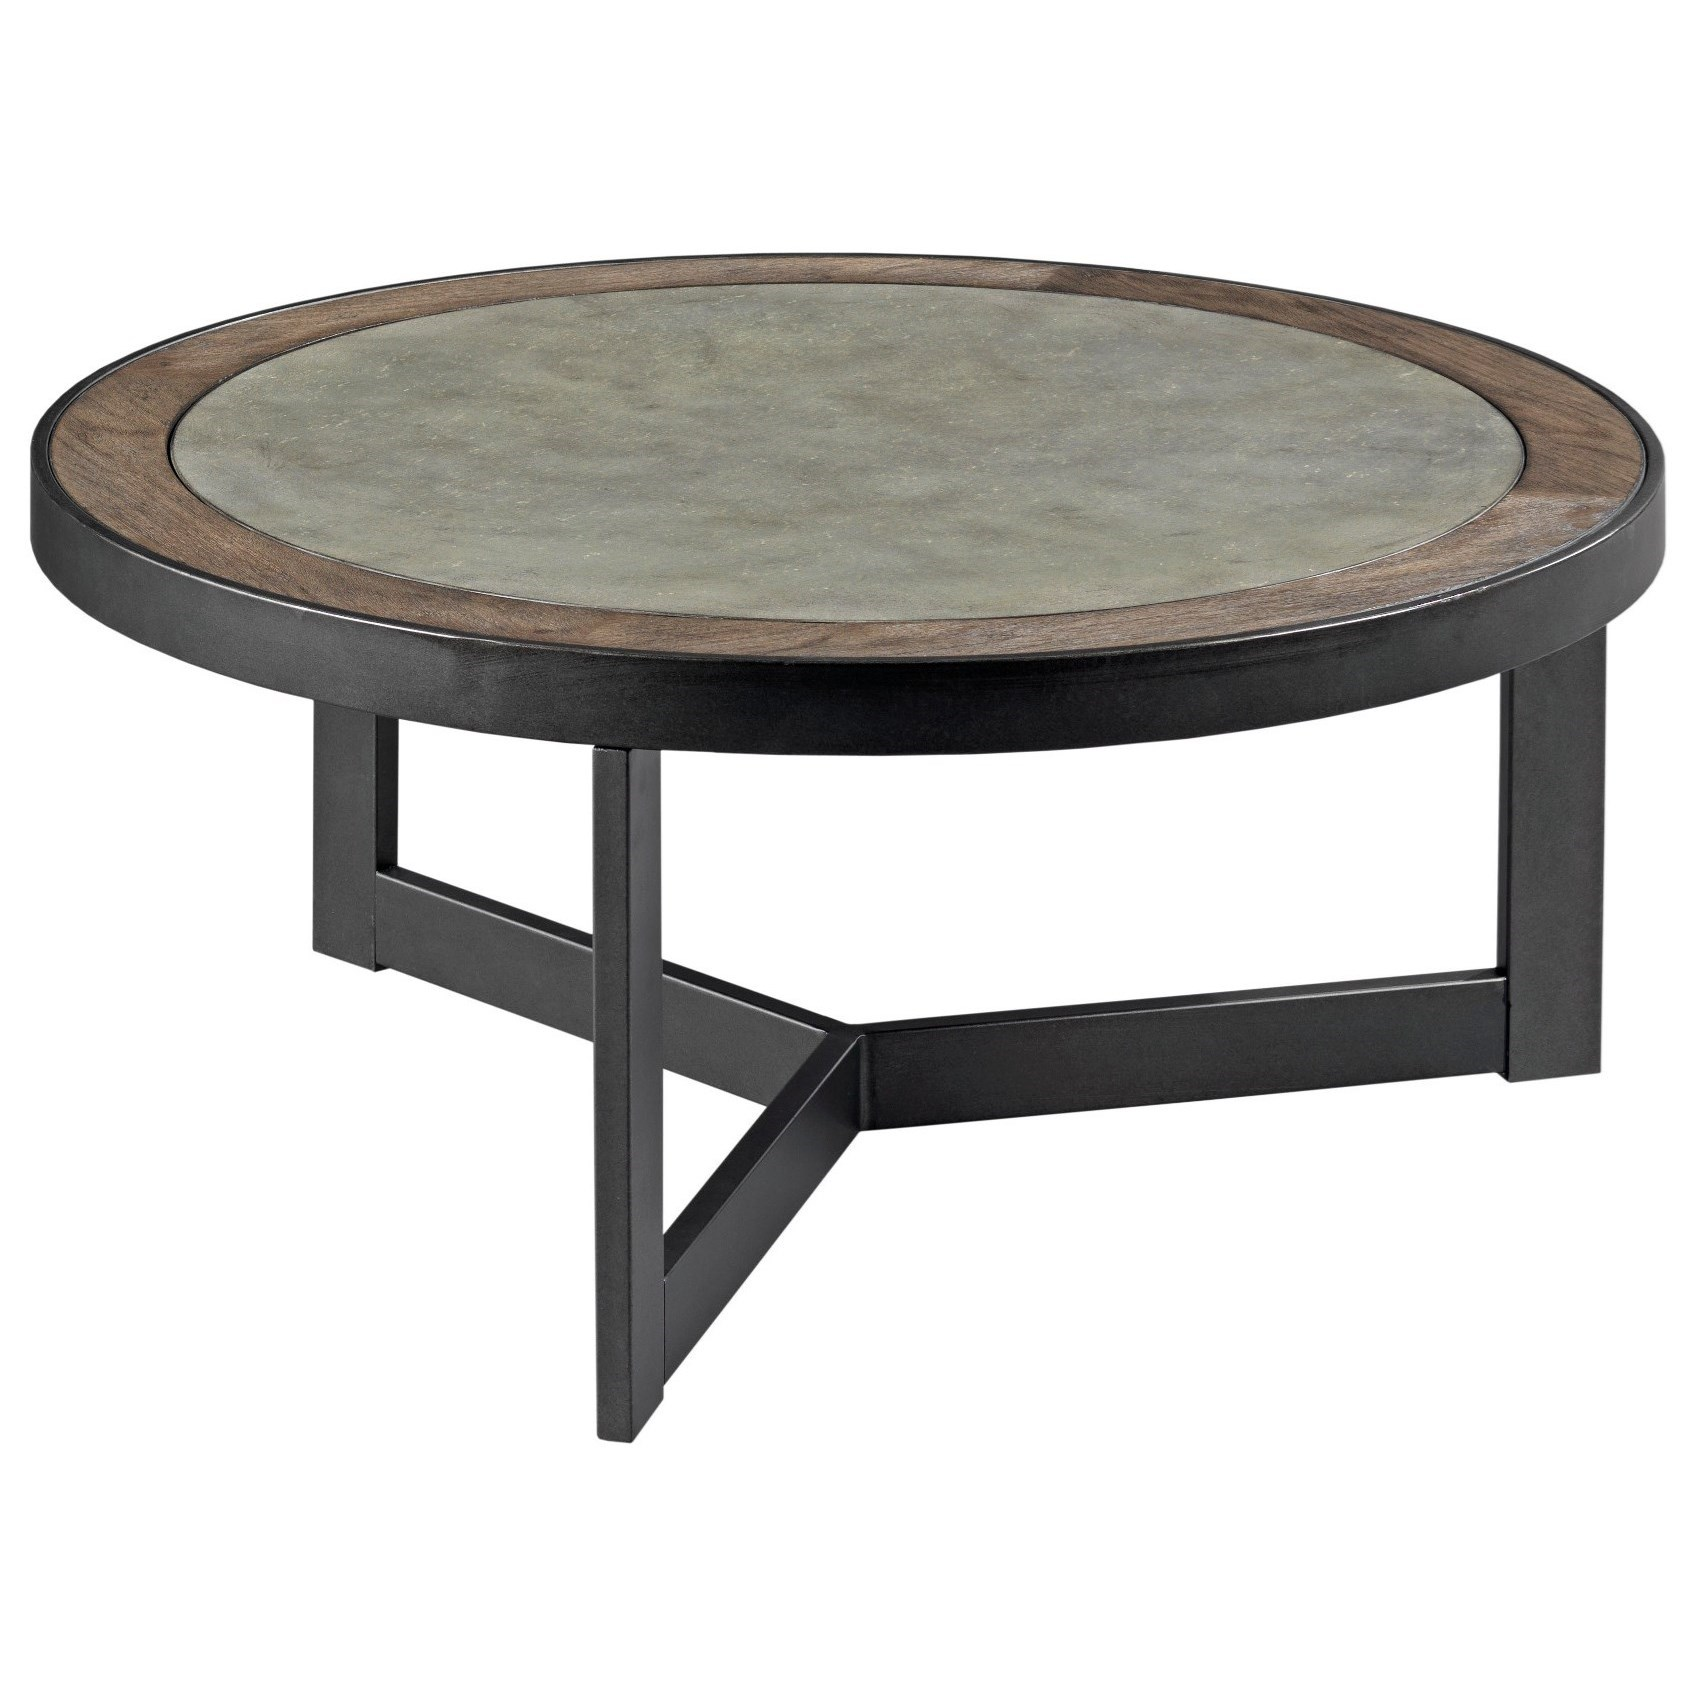 Round Contemporary Coffee Table England Graystone Contemporary Round Cocktail Table